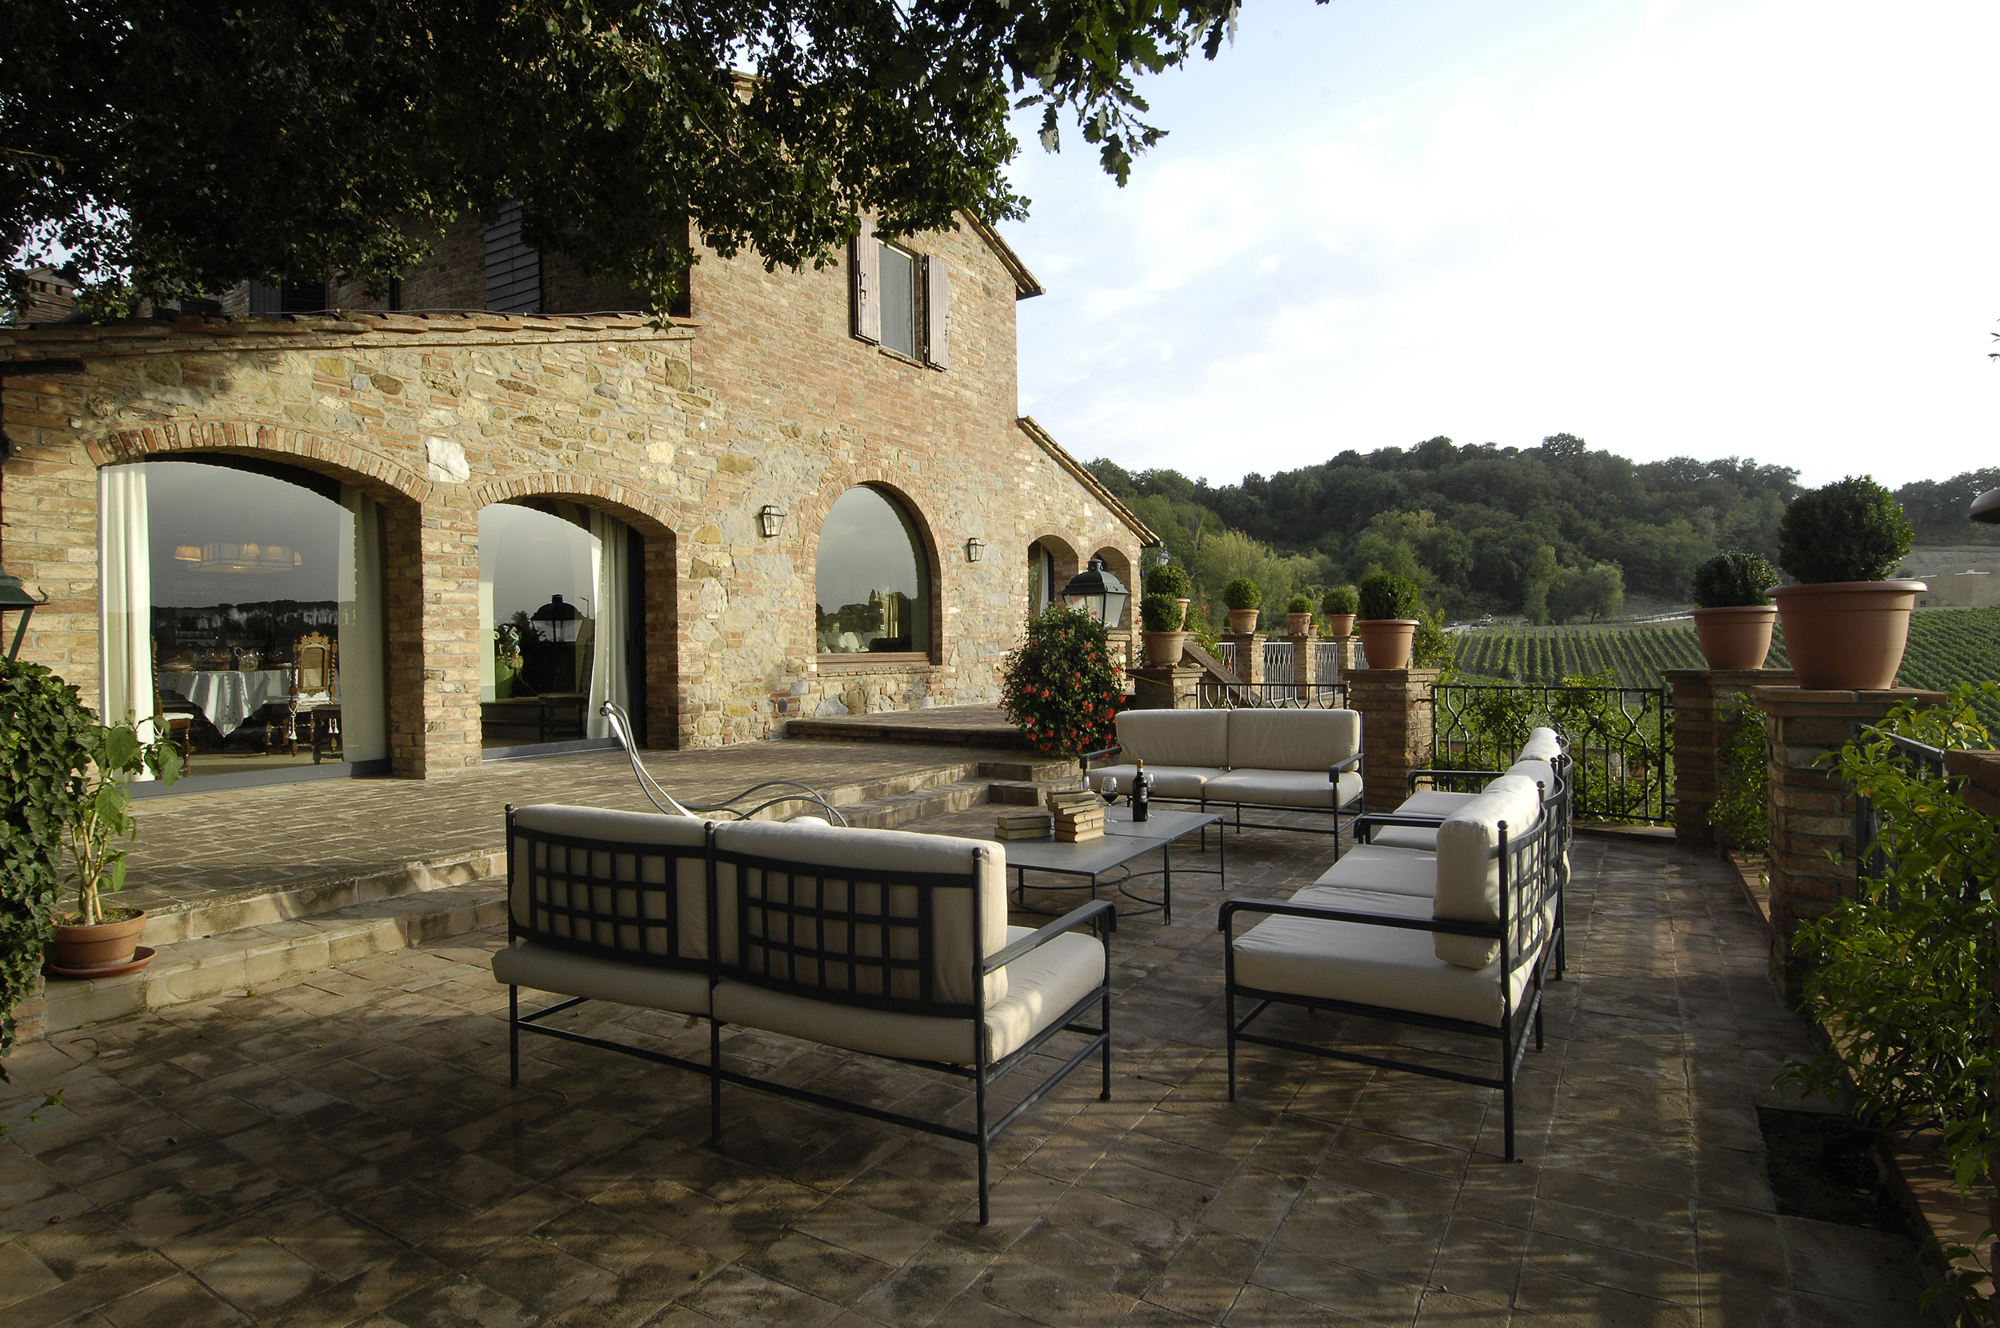 House in Montepulciano (Tuscany)